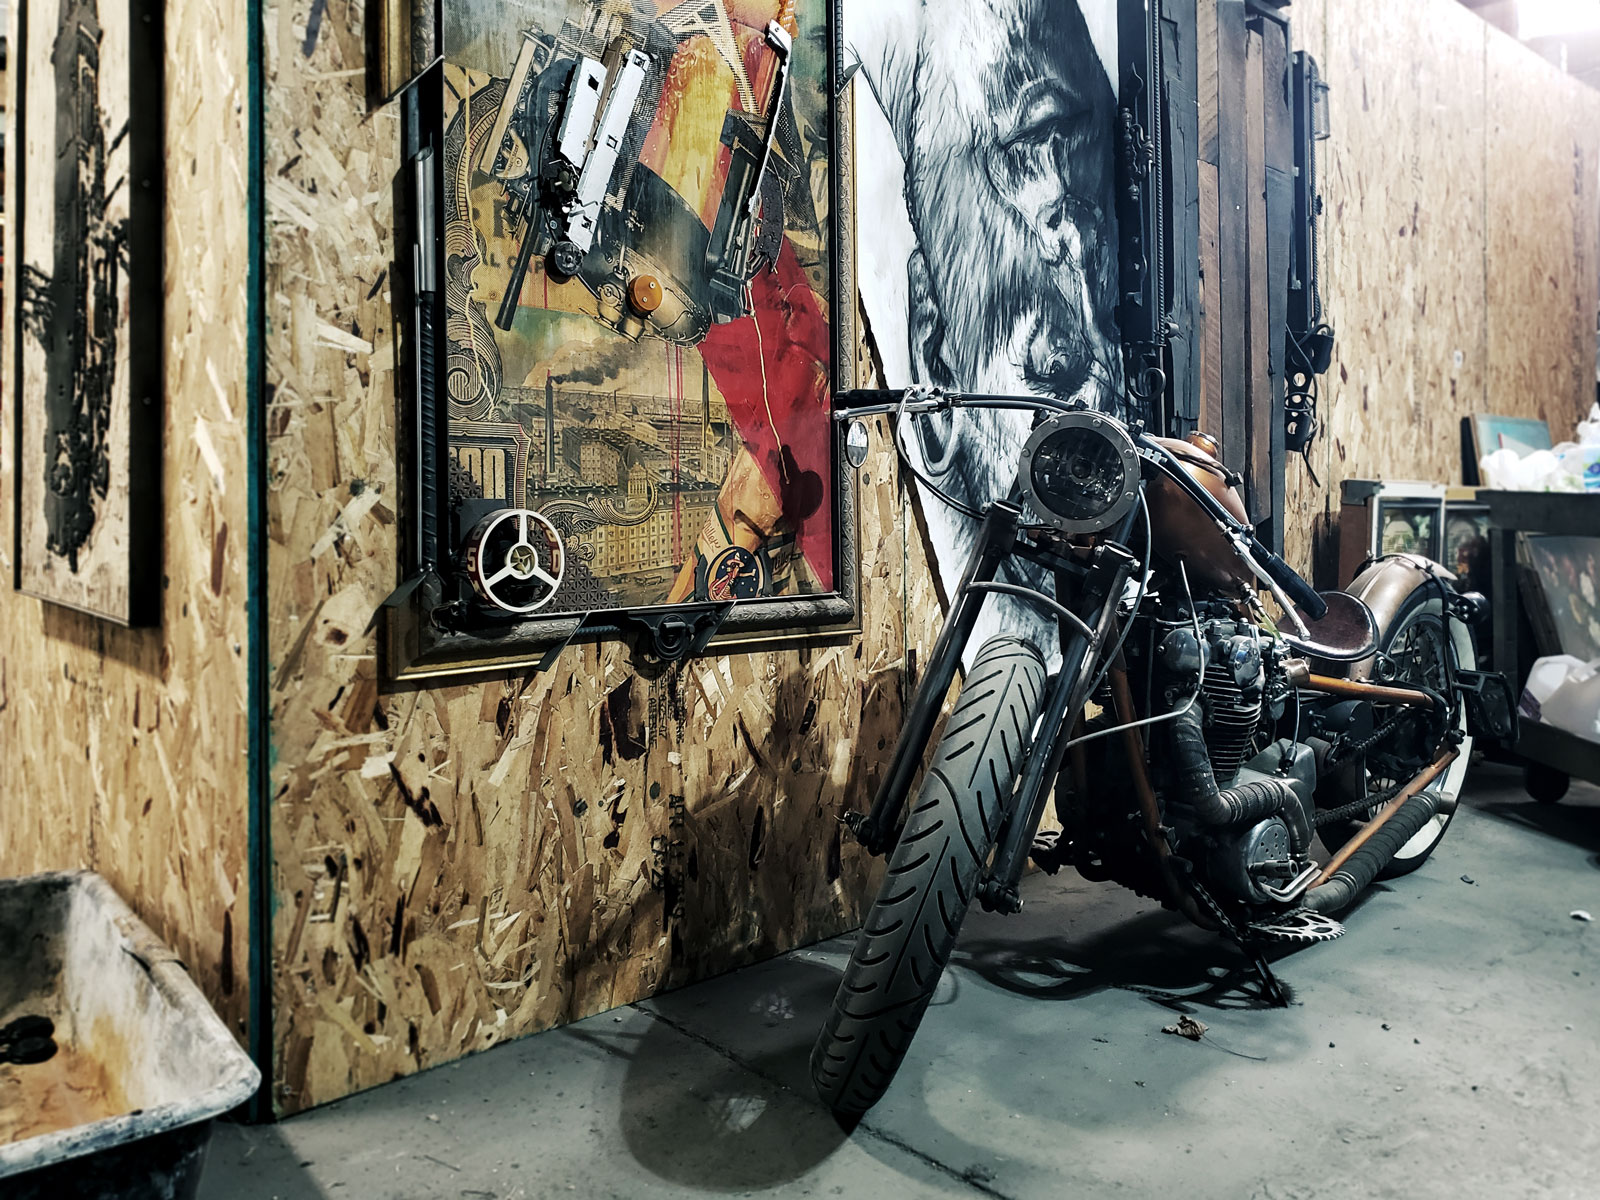 A motorcycle parked next to the industrial prints of Brandon Minga.